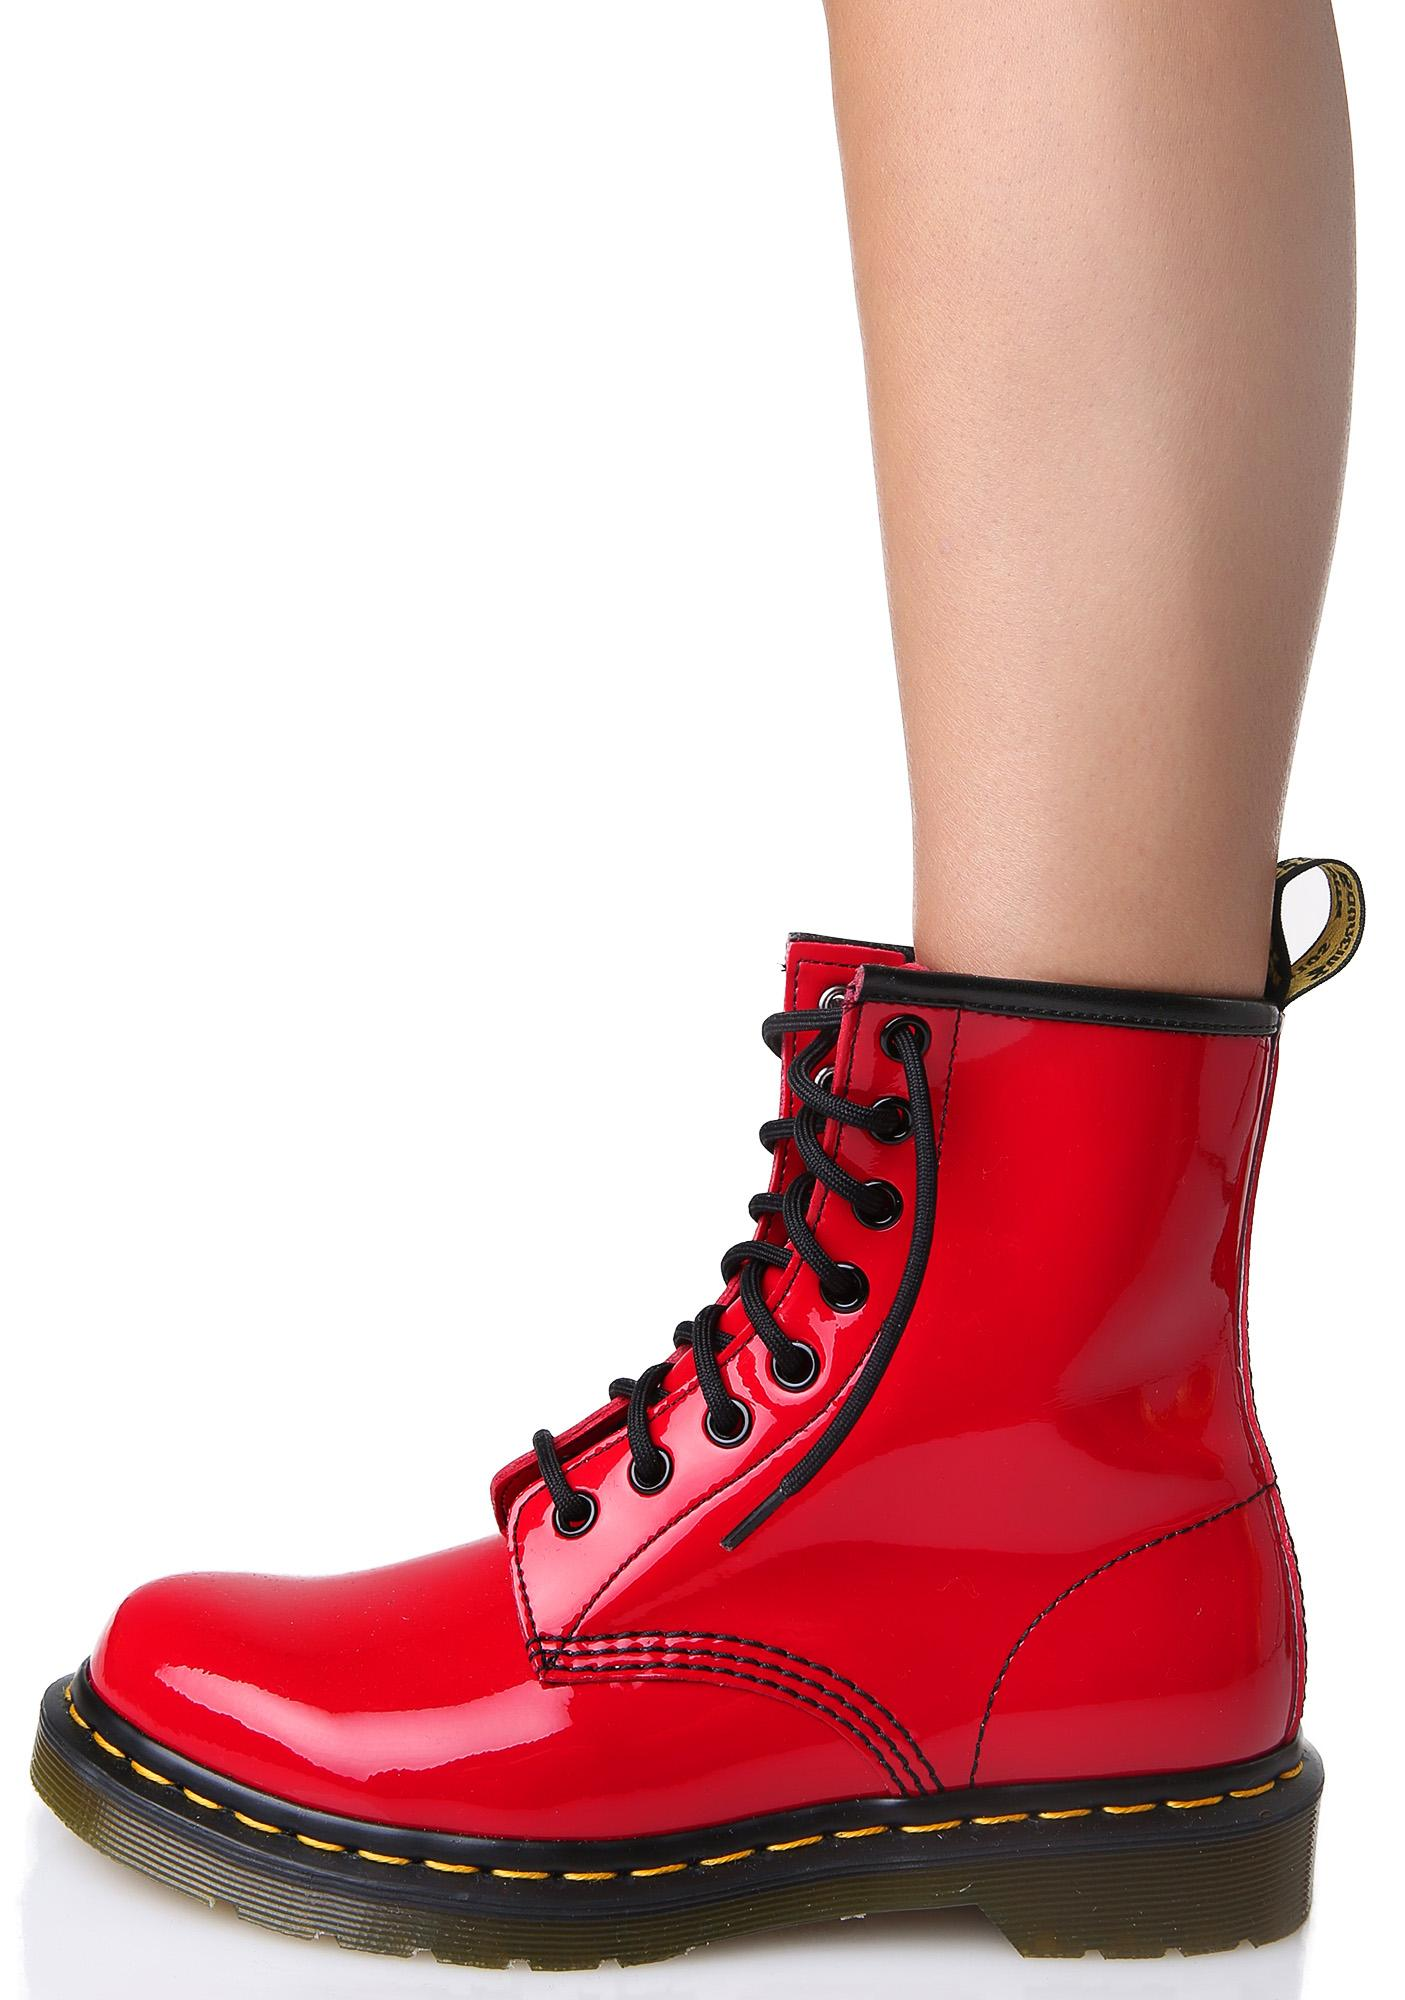 Find great deals on eBay for red patent boots. Shop with confidence.